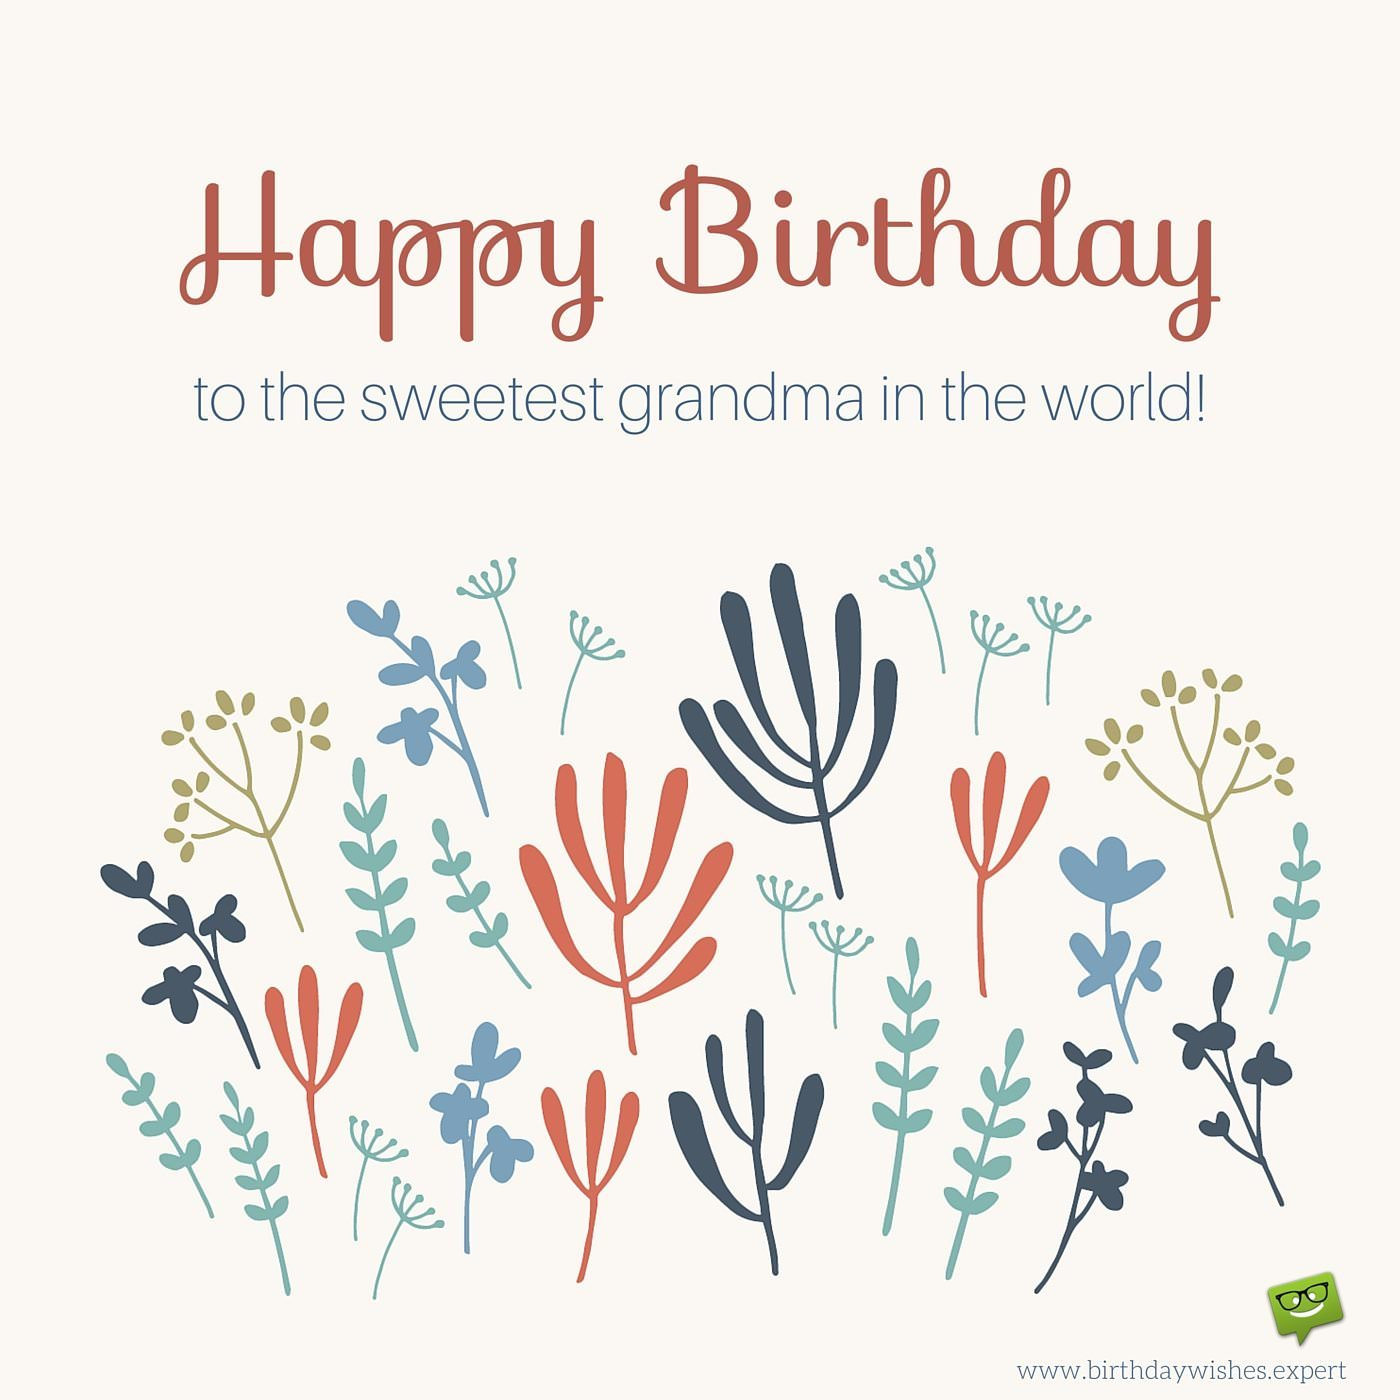 Happy birthday grandma on image of cute leaves and flowers happy birthday grandma on image of cute leaves and flowers izmirmasajfo